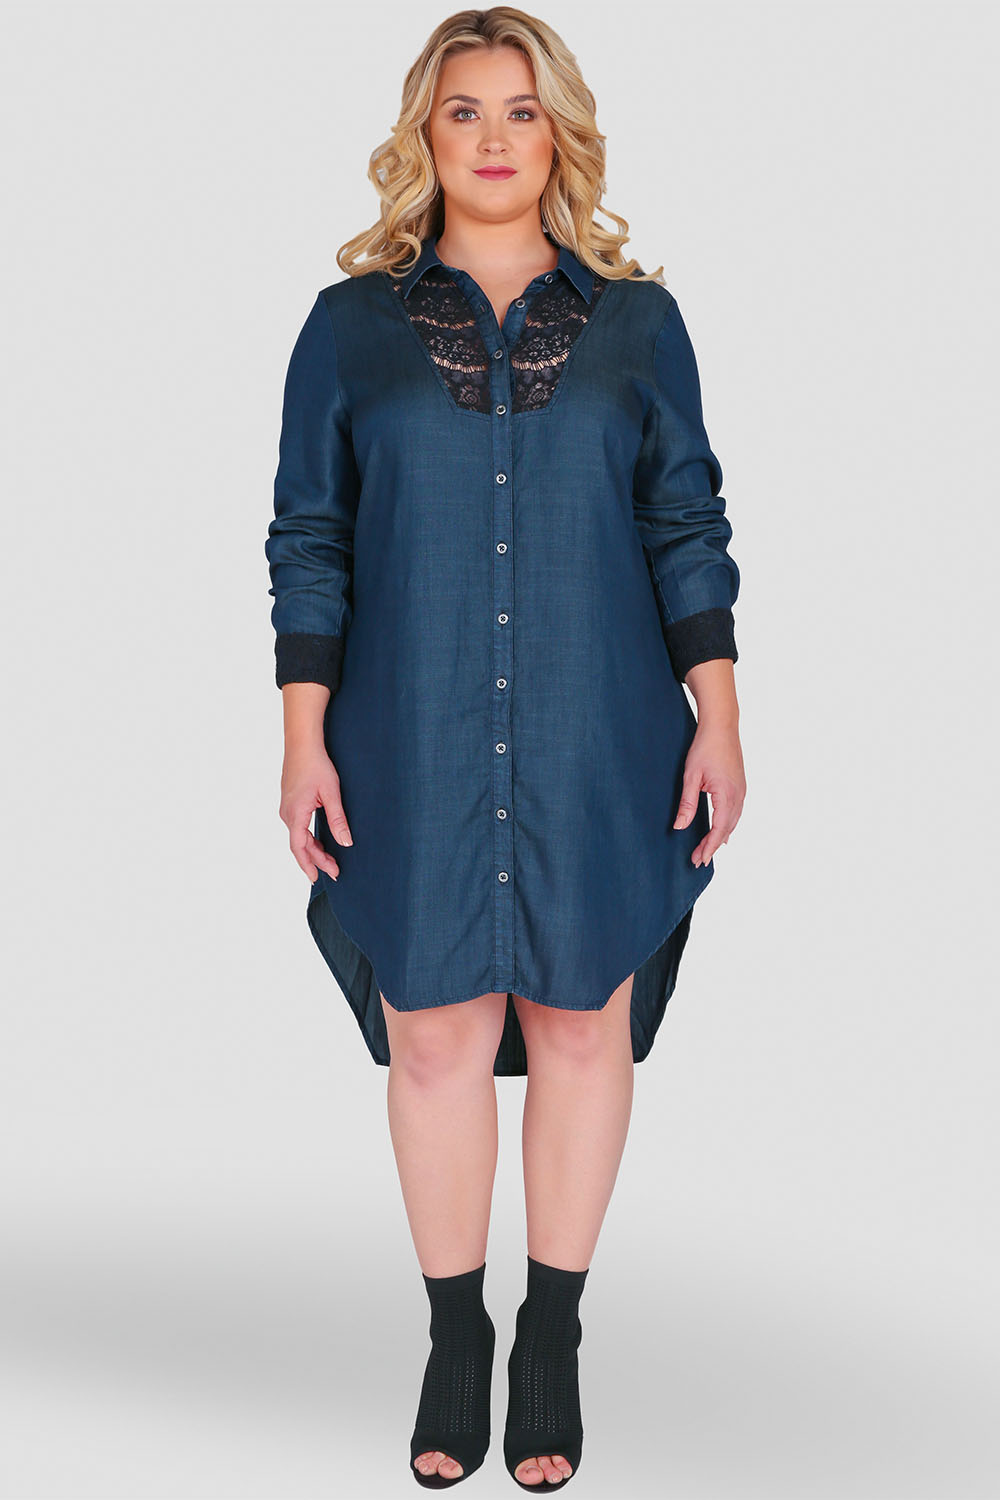 Standards & Practices Plus Size Women's Long-Sleeved Button-Up Denim & Lace Top